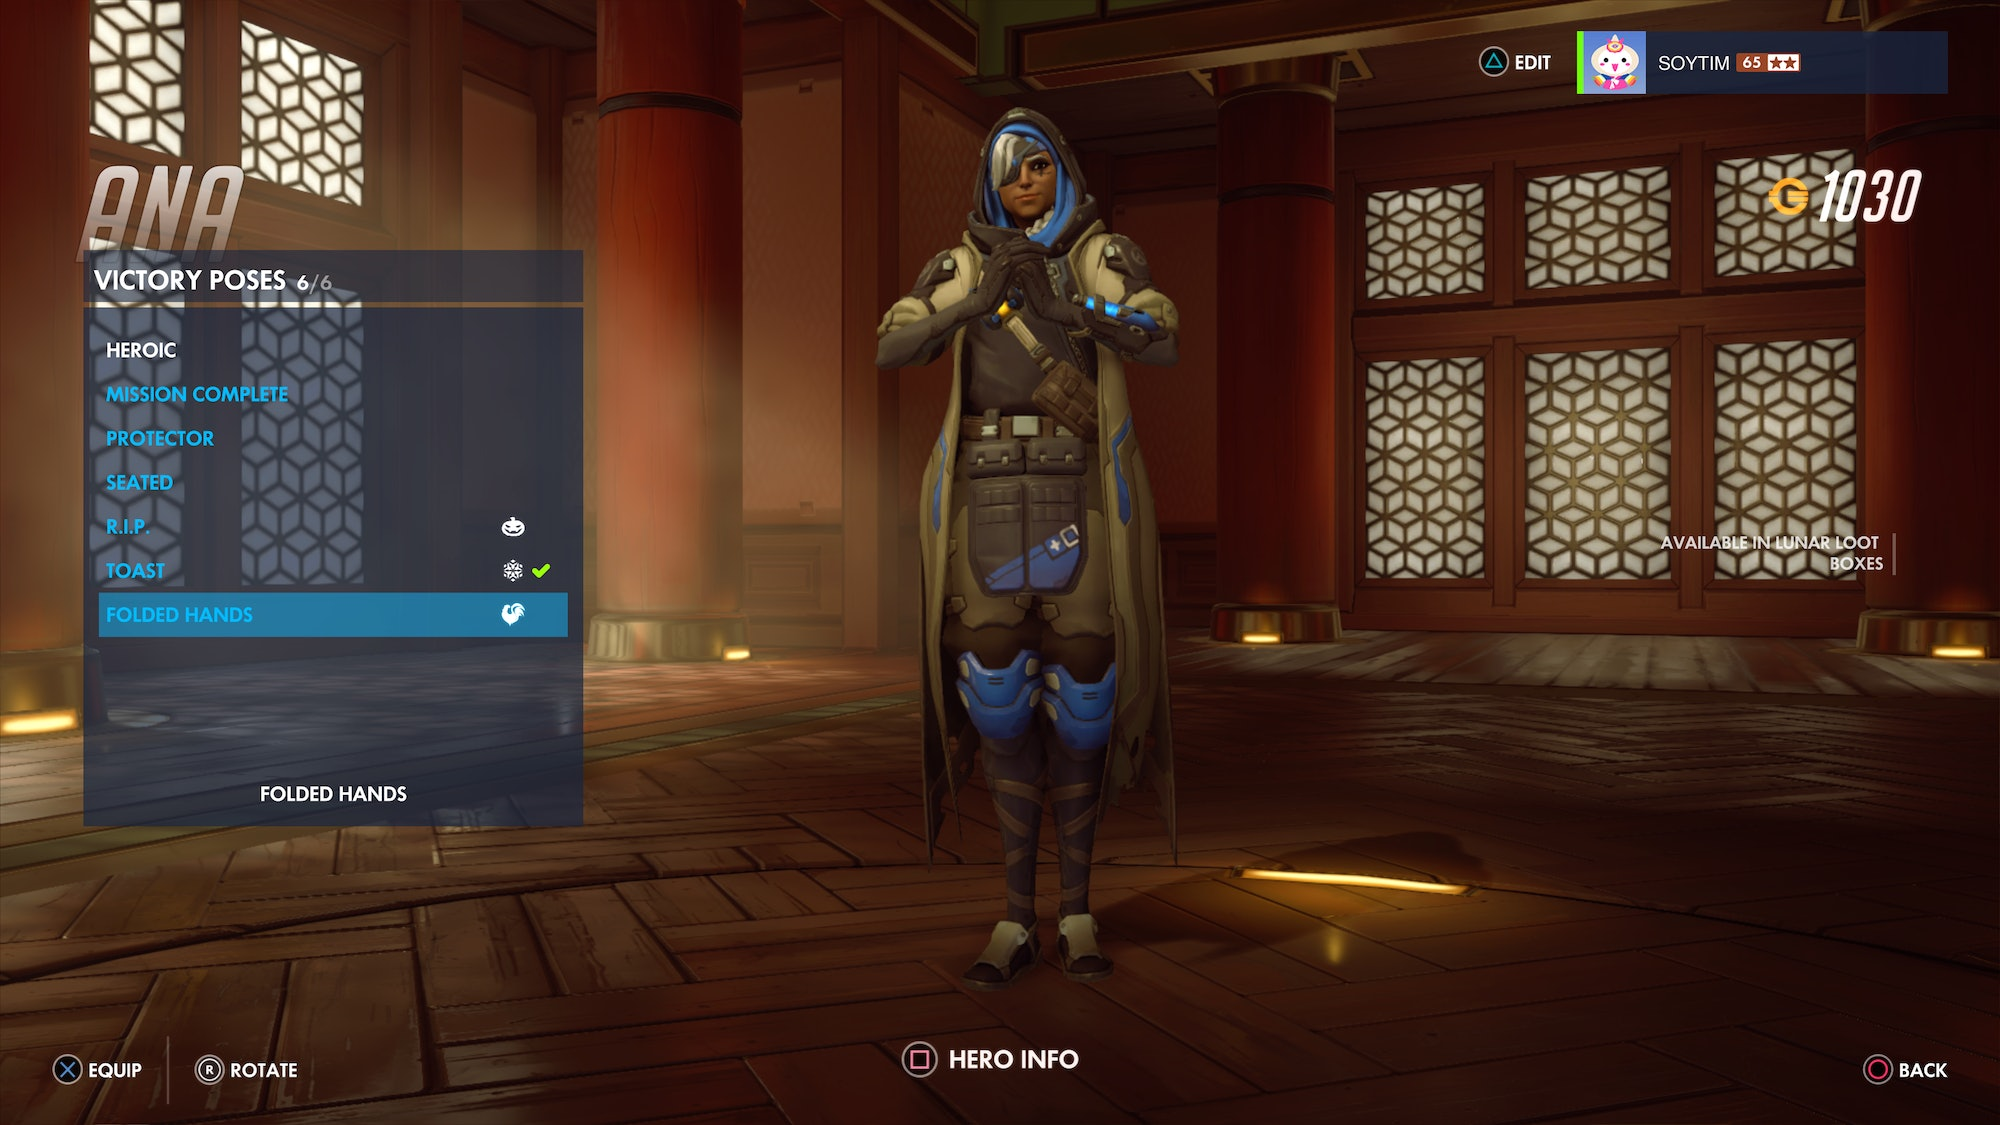 Ana Emotes overwatch' year of the rooster skins: every skin, highlight